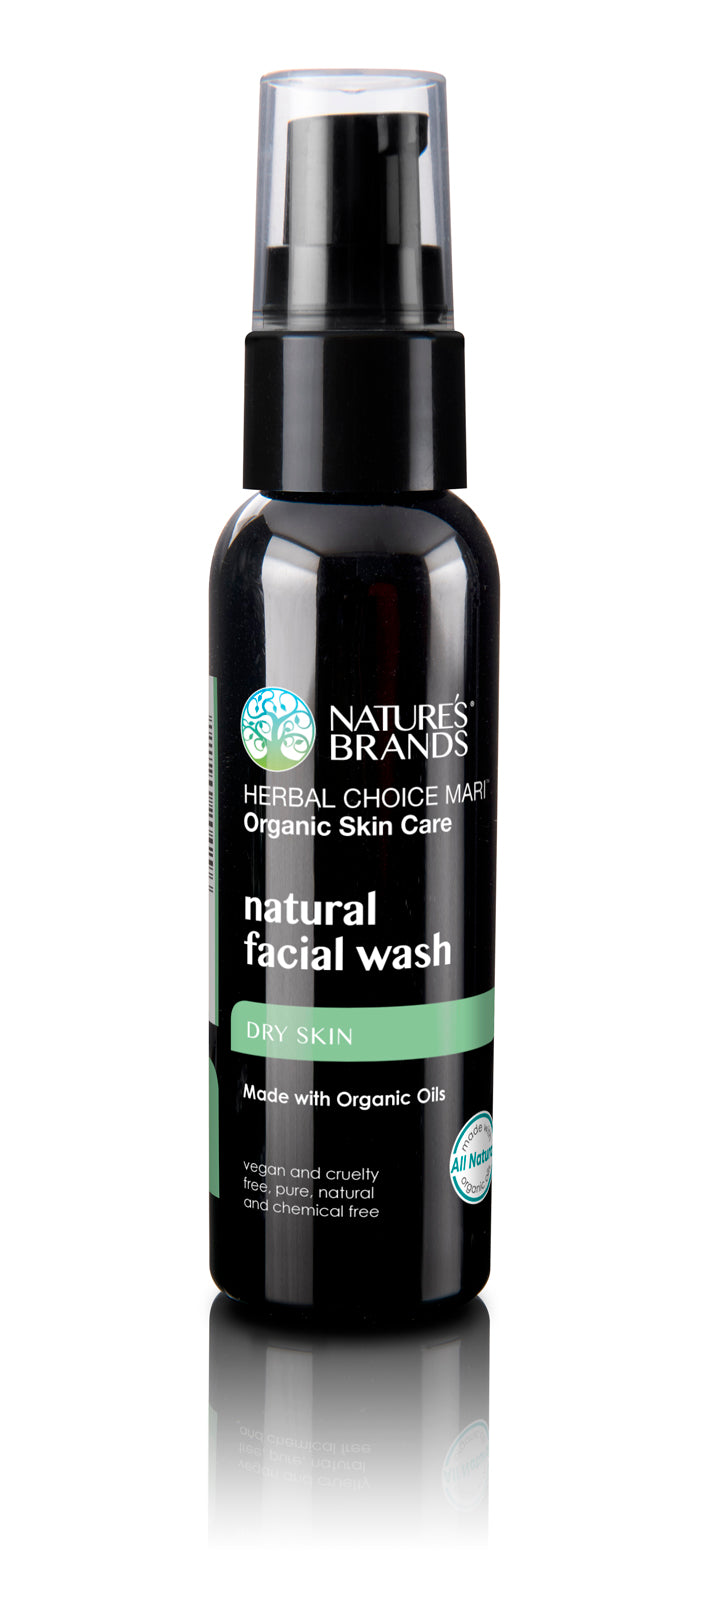 Herbal Choice Mari Natural Facial Wash; Made with Organic - Herbal Choice Mari Natural Facial Wash; Made with Organic - Herbal Choice Mari Natural Facial Wash; Made with Organic